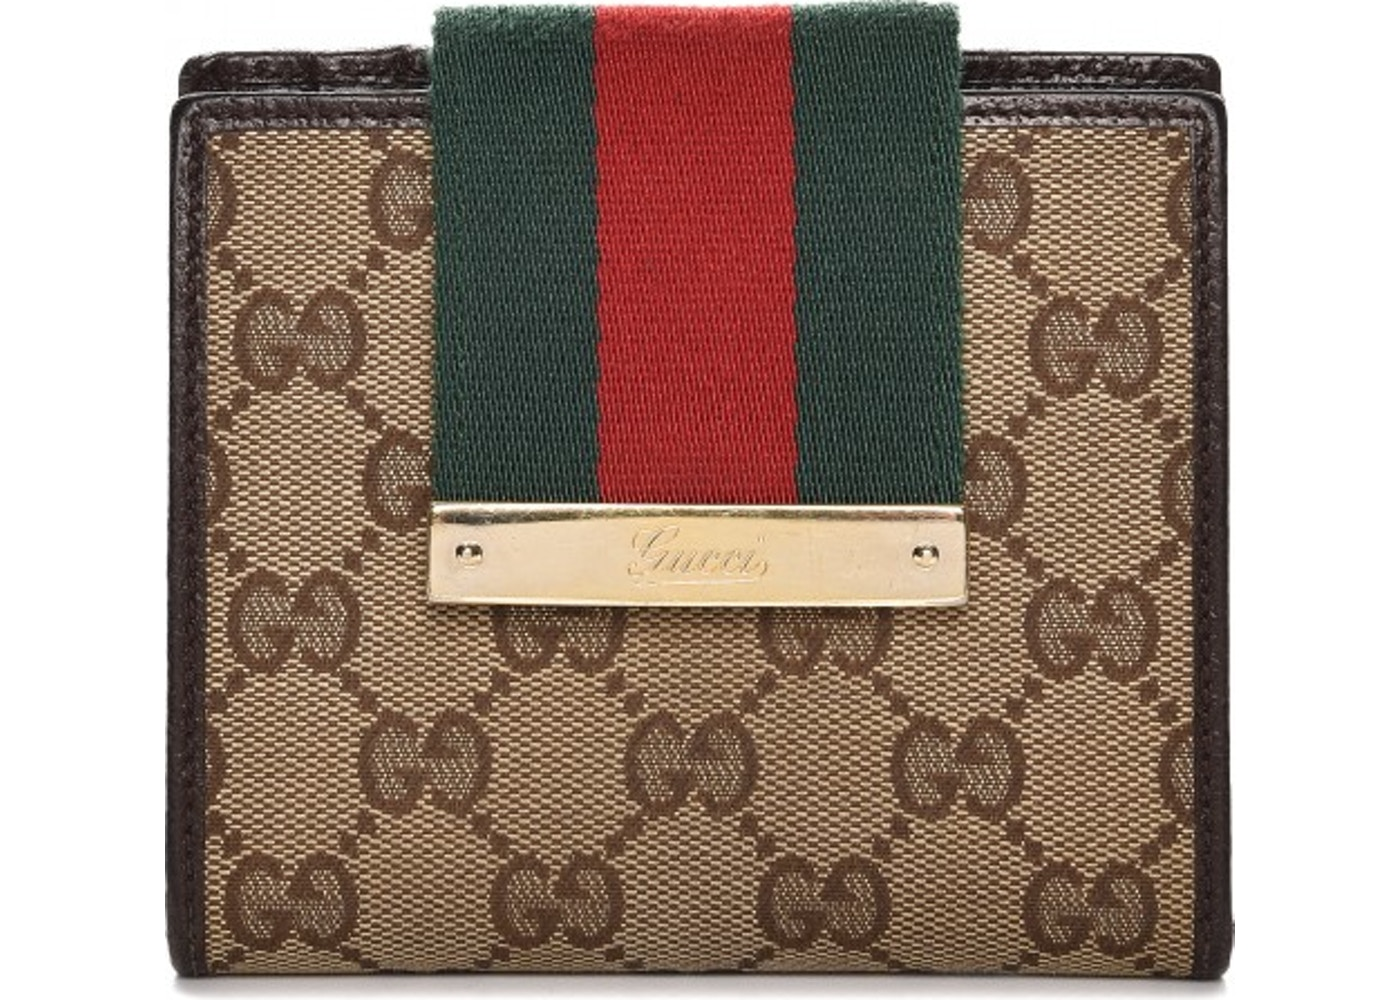 7a8059fdfd15 Gucci Ladies Web French Flap Wallet Monogram GG Dark Brown/Green/Red.  Monogram GG Dark Brown/Green/Red